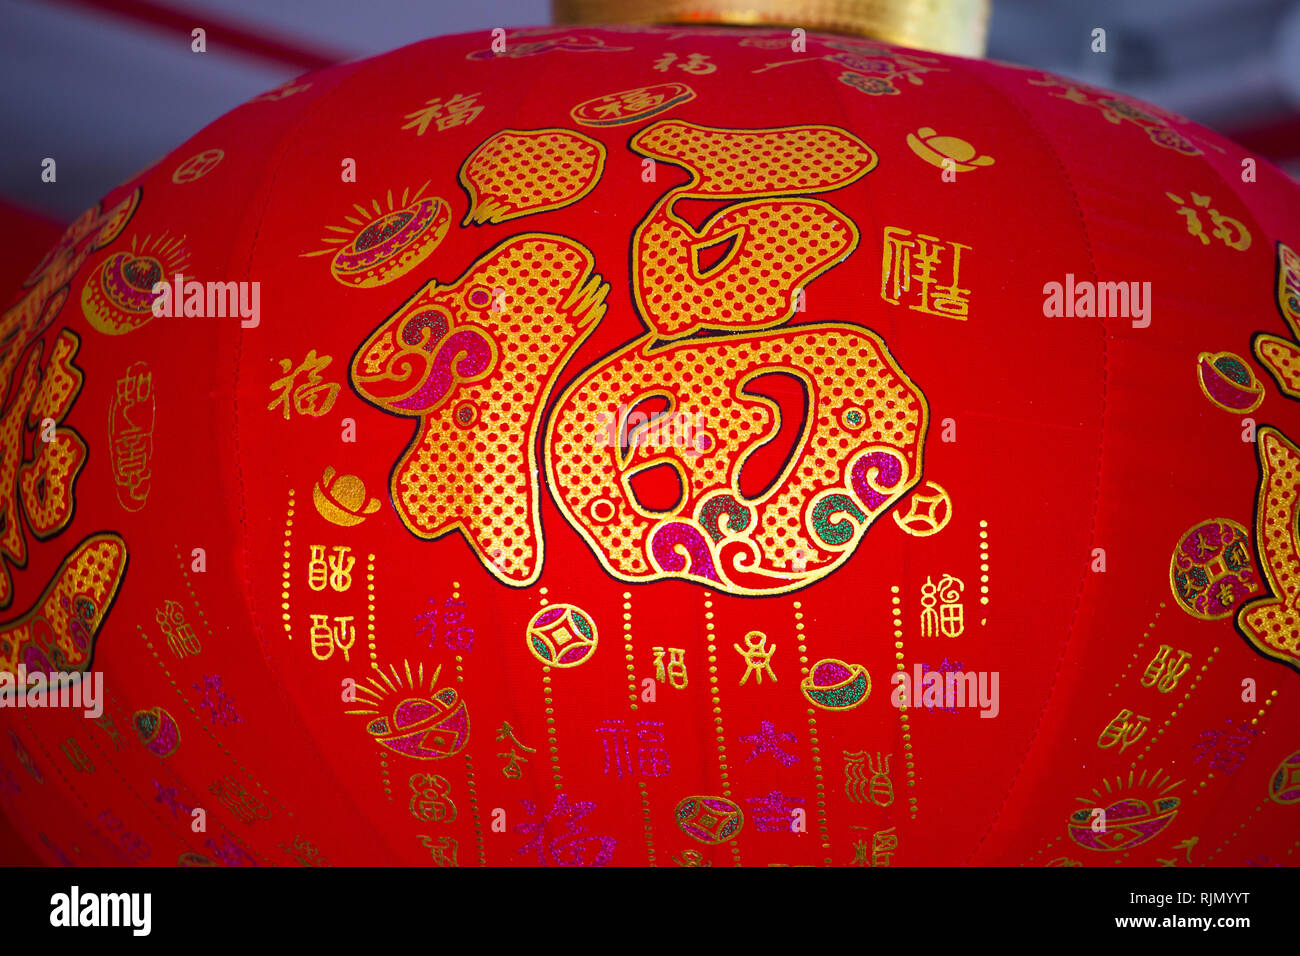 Chinese New Year decoration design with the Chinese character 福 (Fu) in it. A single character meanings of good fortune, happiness and luck. Stock Photo